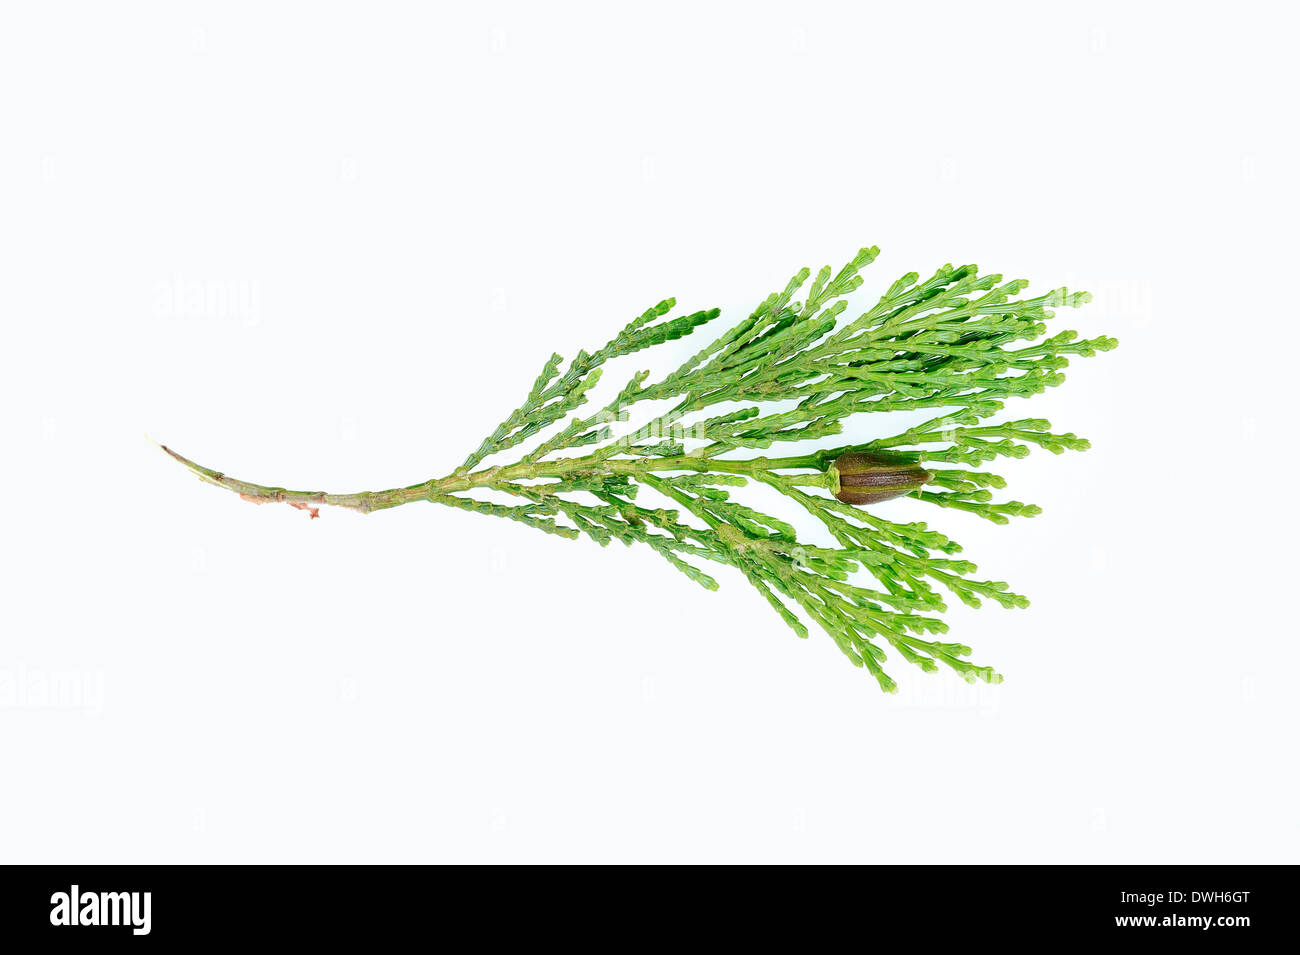 Eastern Arborvitae, American Arborvitae or White Cedar (Thuja occidentalis), twig with cones - Stock Image